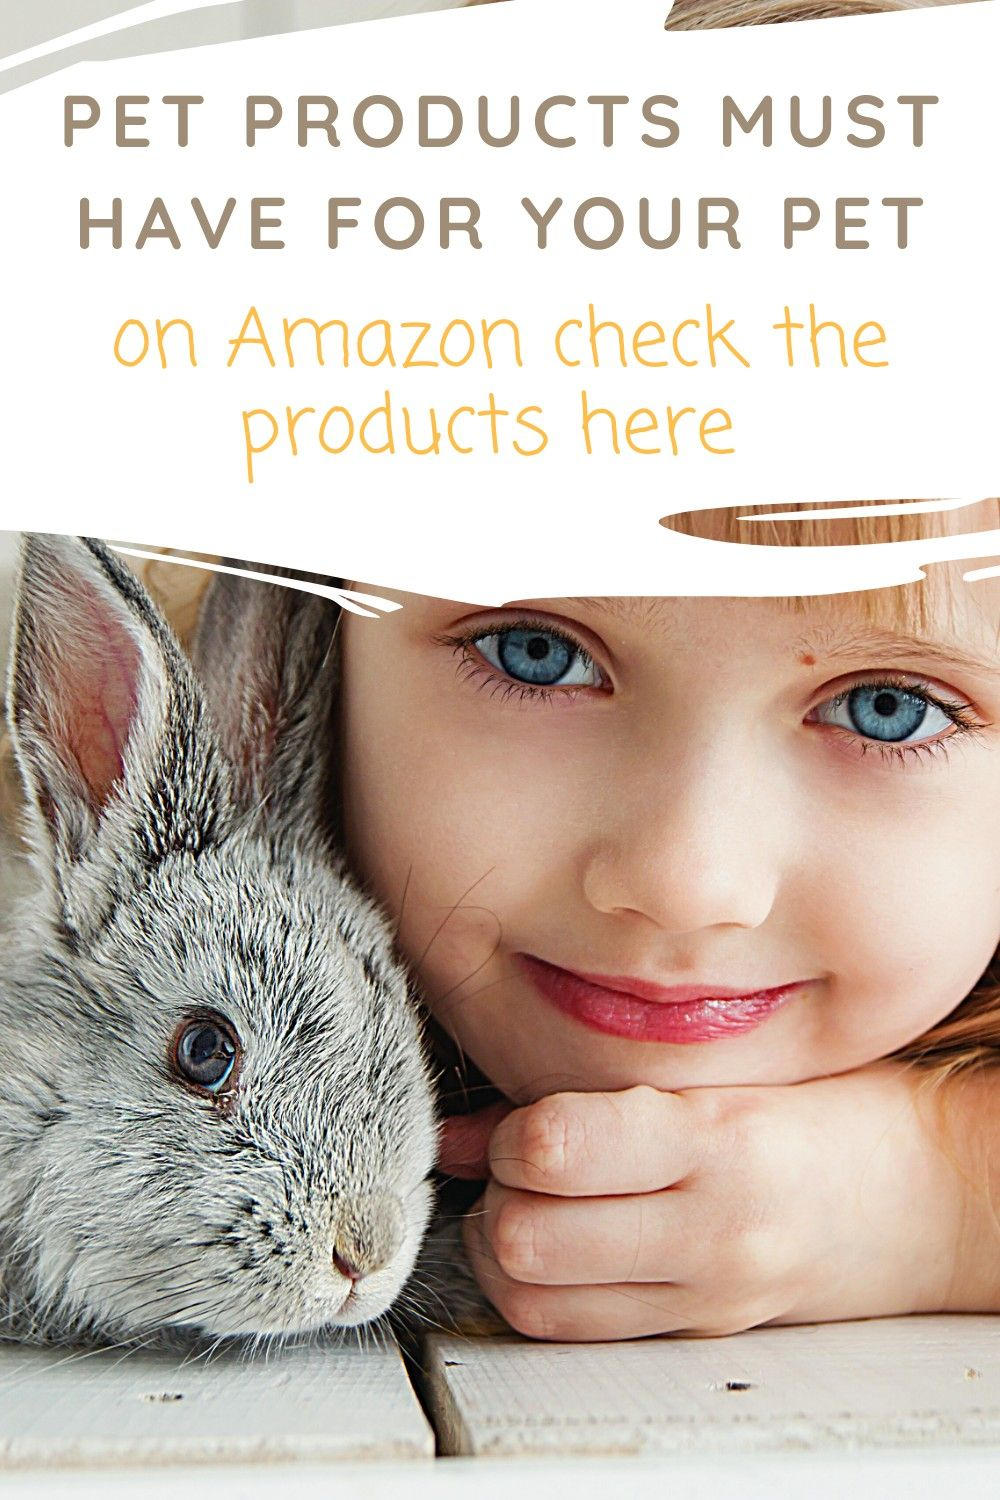 Pets products and supplies must have for your pets on